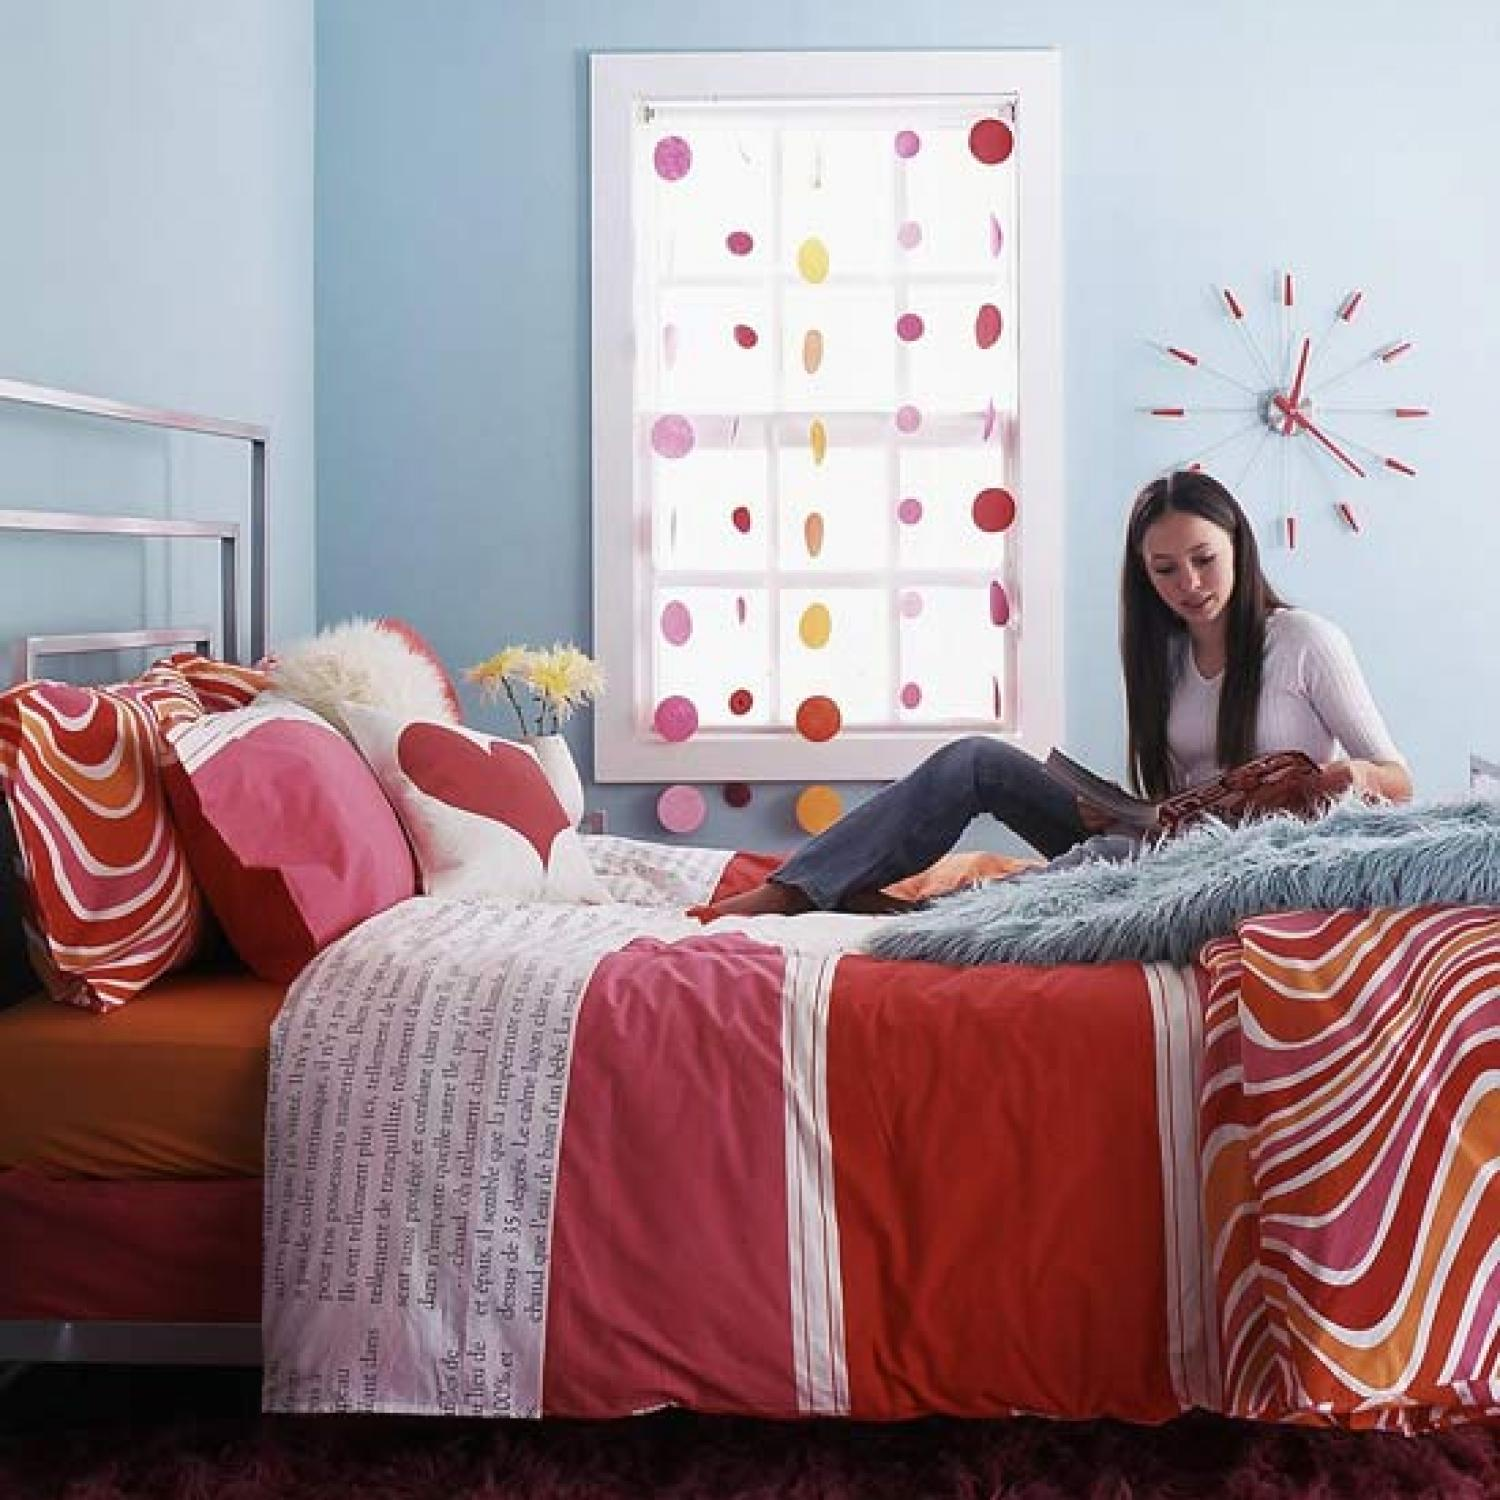 Small bedroom decorating ideas for young adults trooperweren tk - Small adult bedroom decorating ideas ...